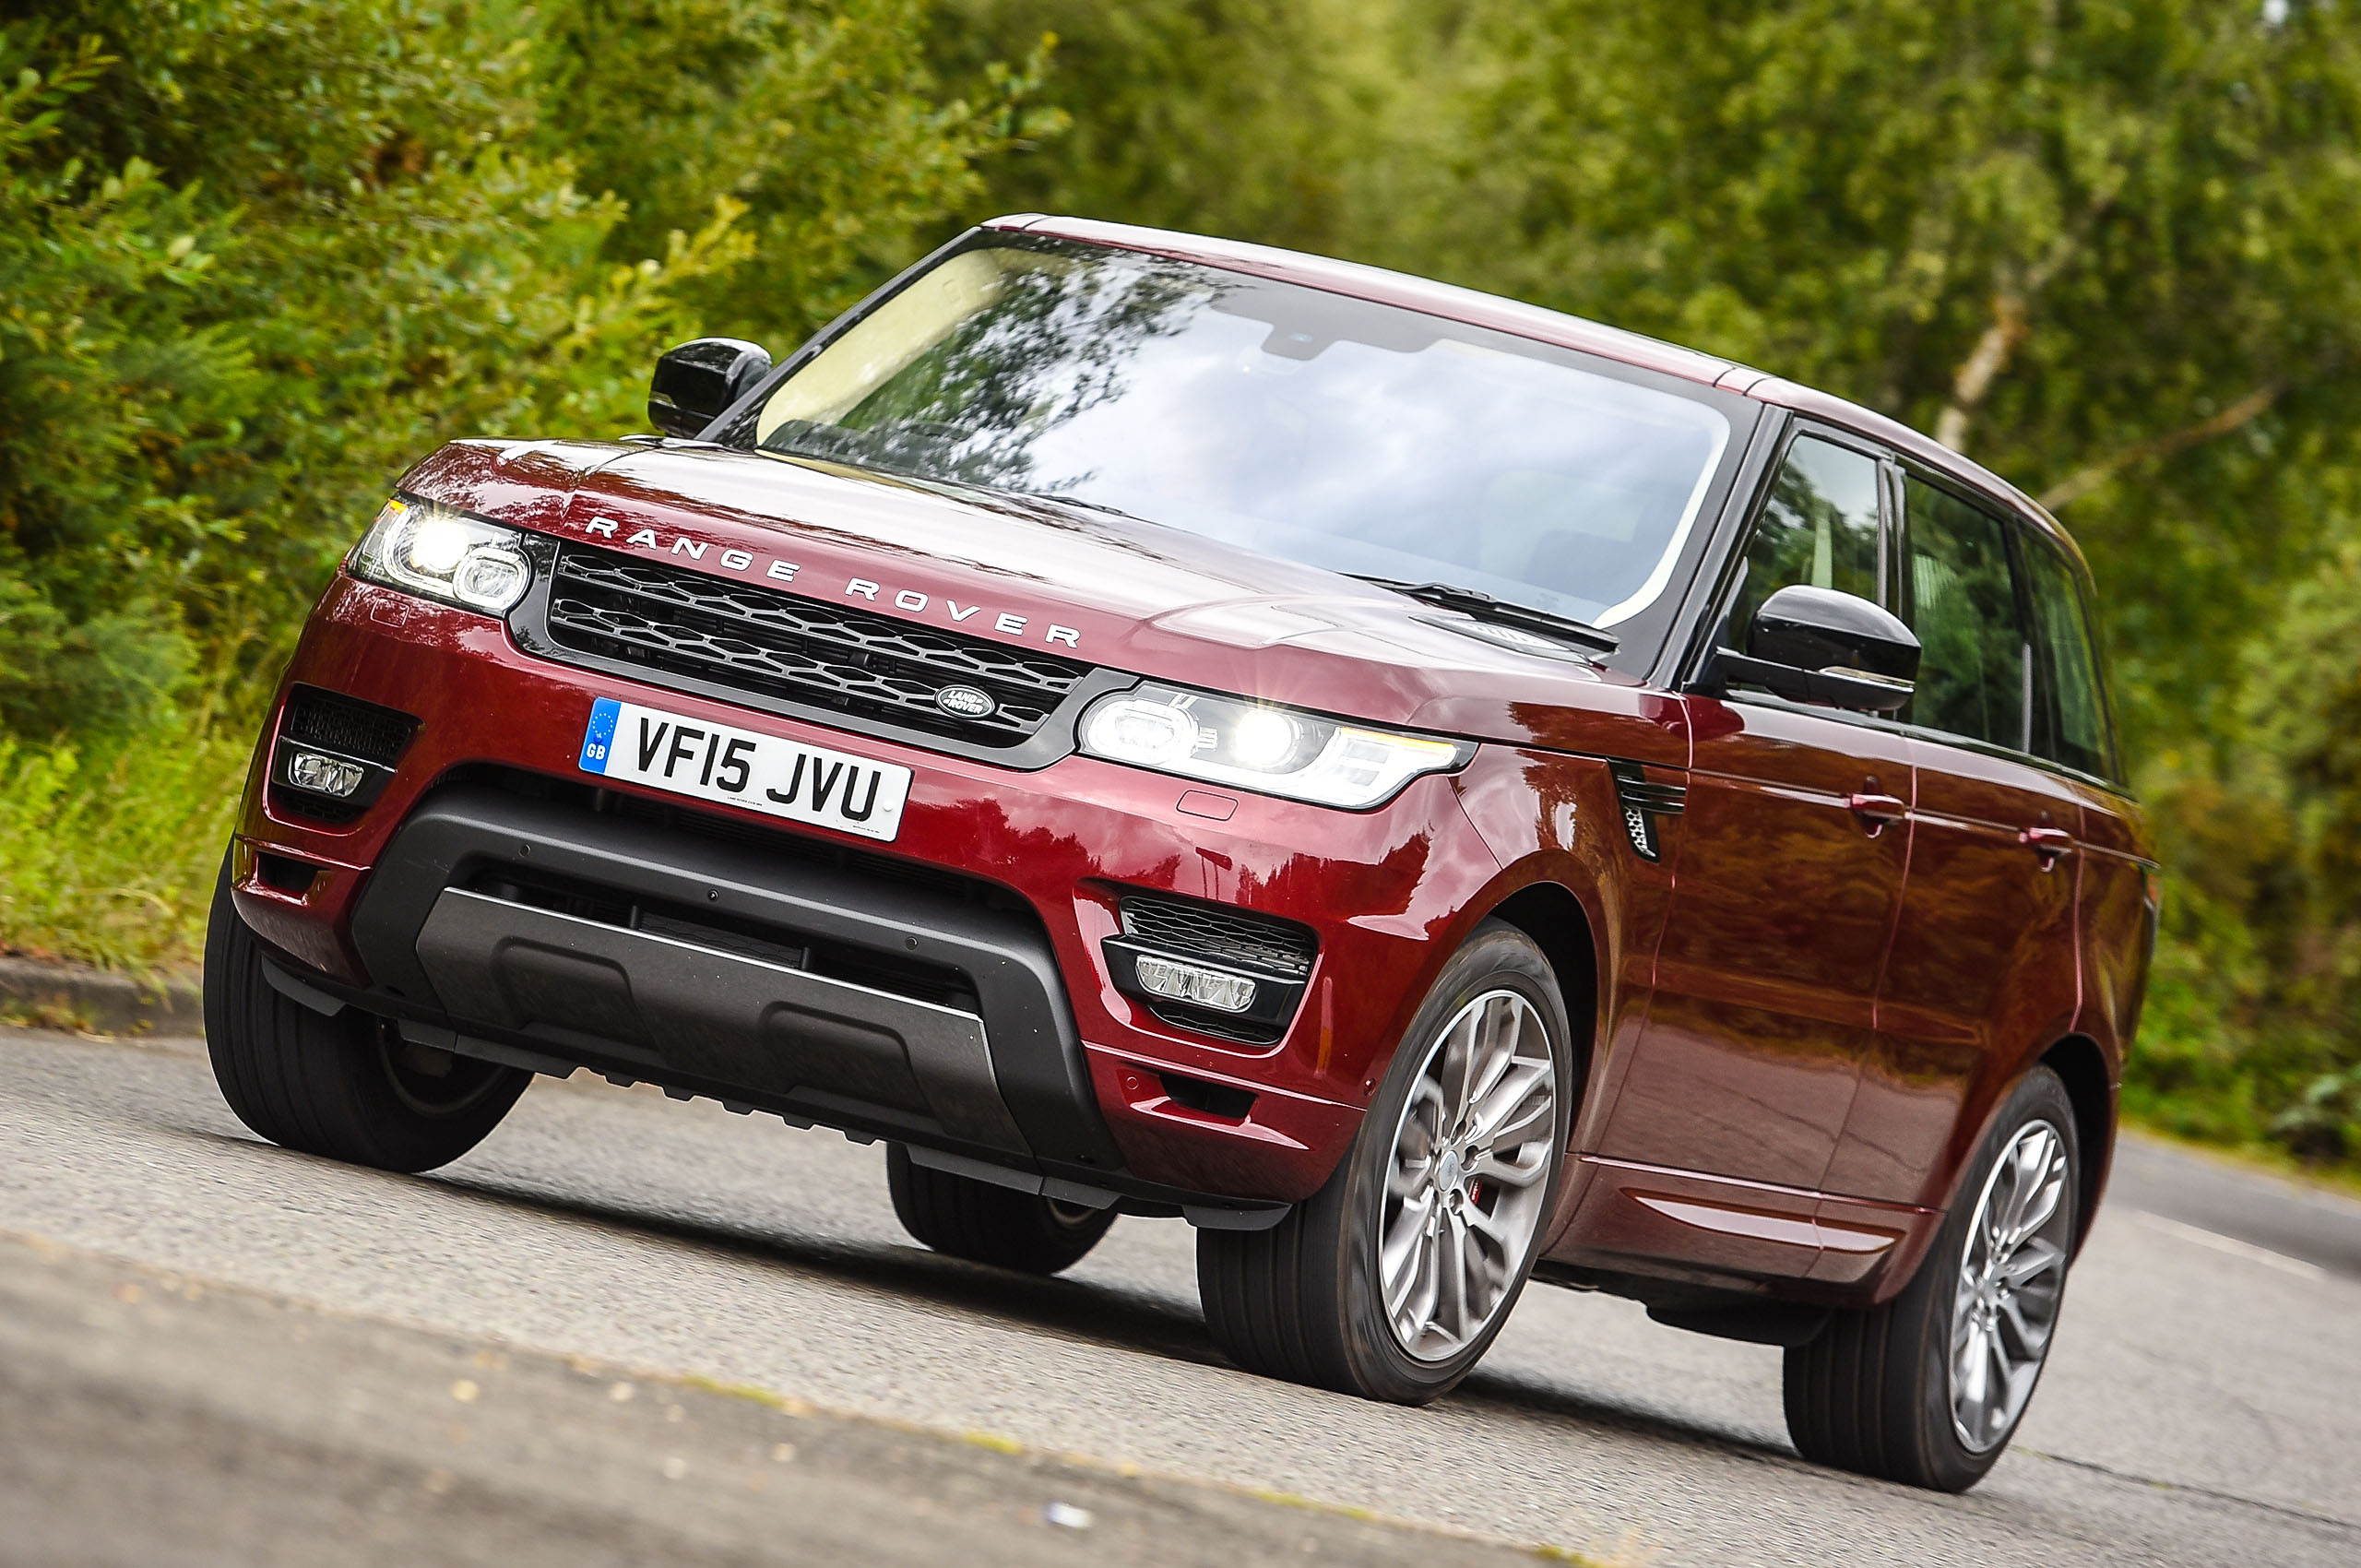 2016 Range Rover Sport 3 0 SDV6 Autobiography Dynamic review